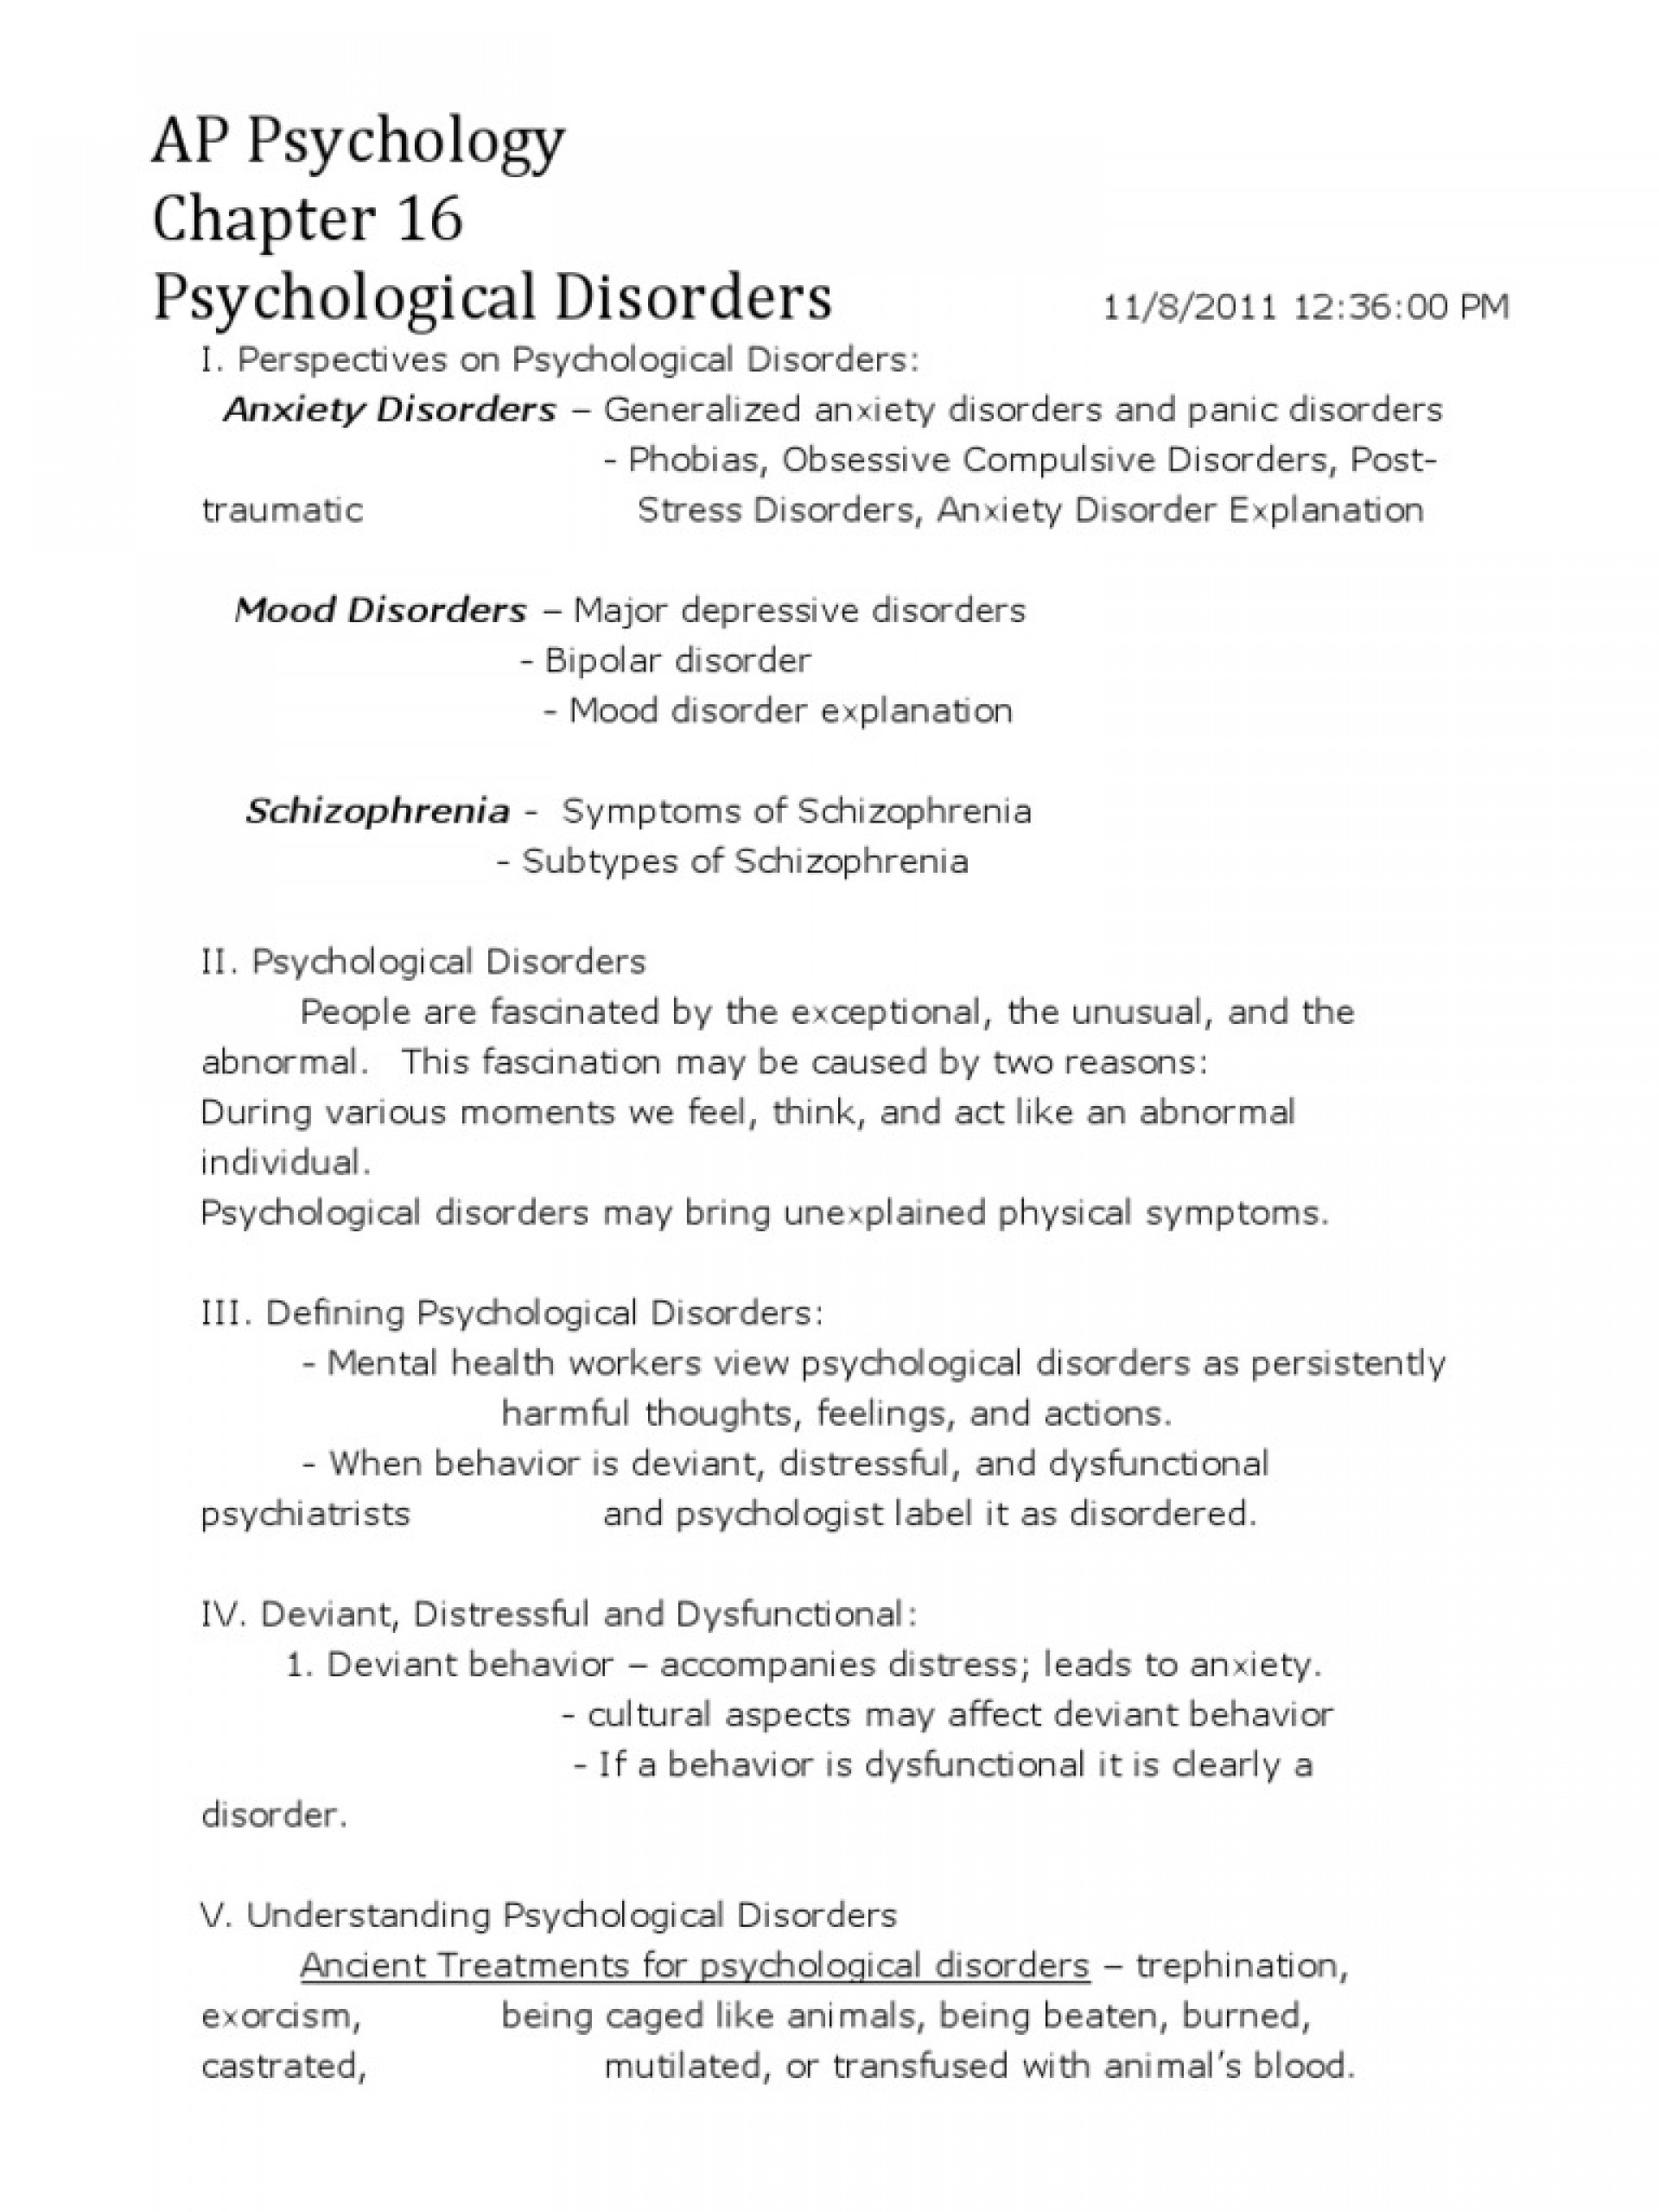 019 Bipolar Disorder Essay Topics Title Pdf College Introduction Question Conclusion Examples Outline How To Write Paragraph Research Best A Paper Great 1920